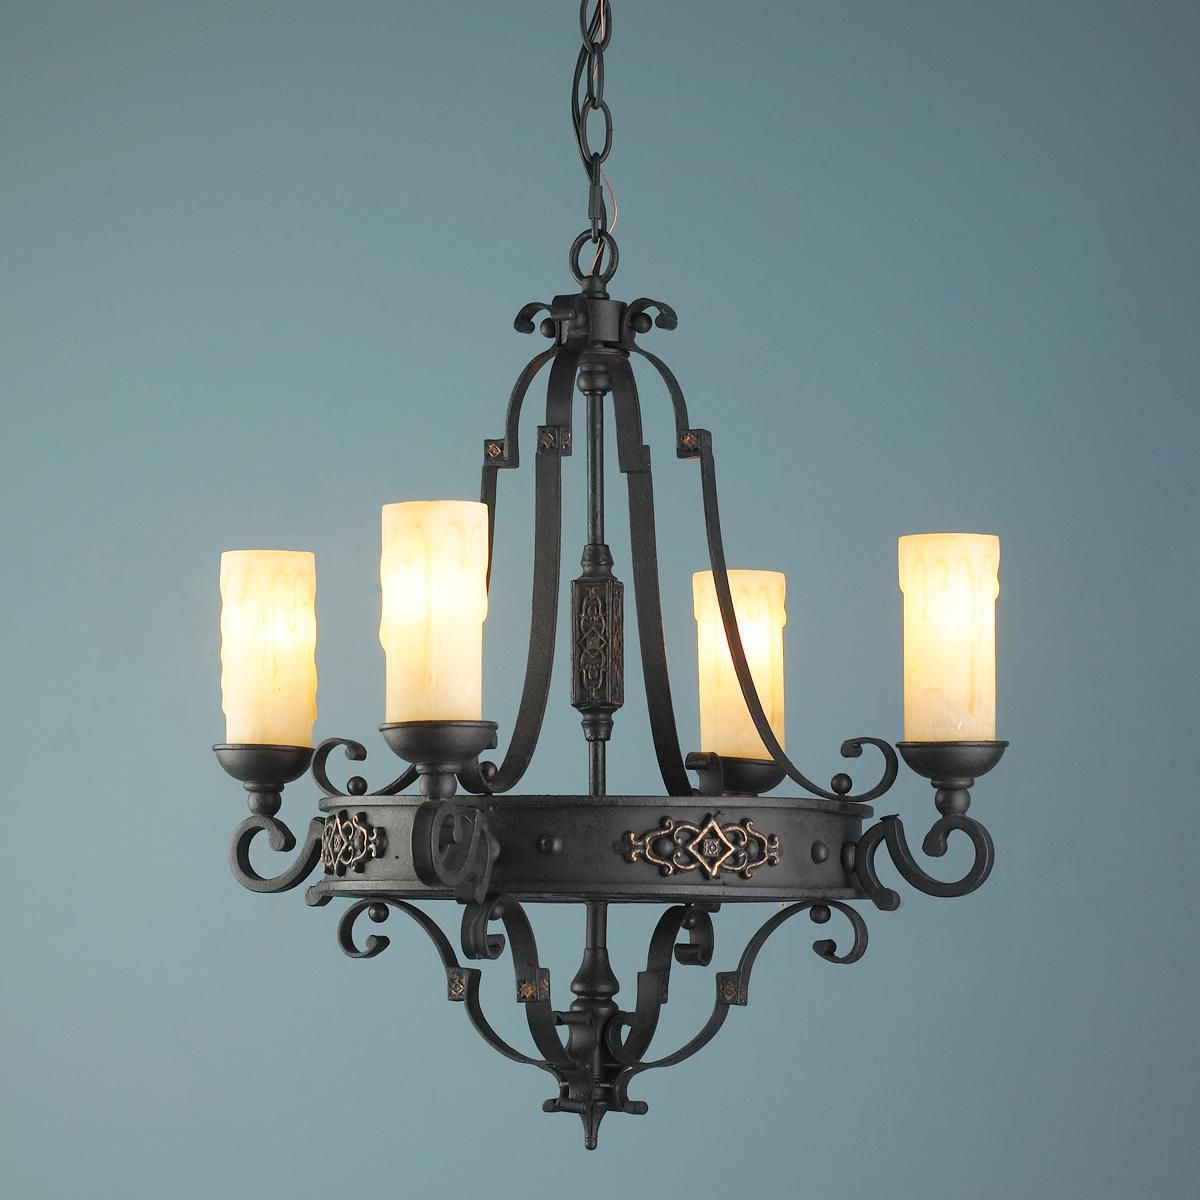 Mini castle candles chandelier for the home pinterest mini castle candles chandelier aloadofball Choice Image